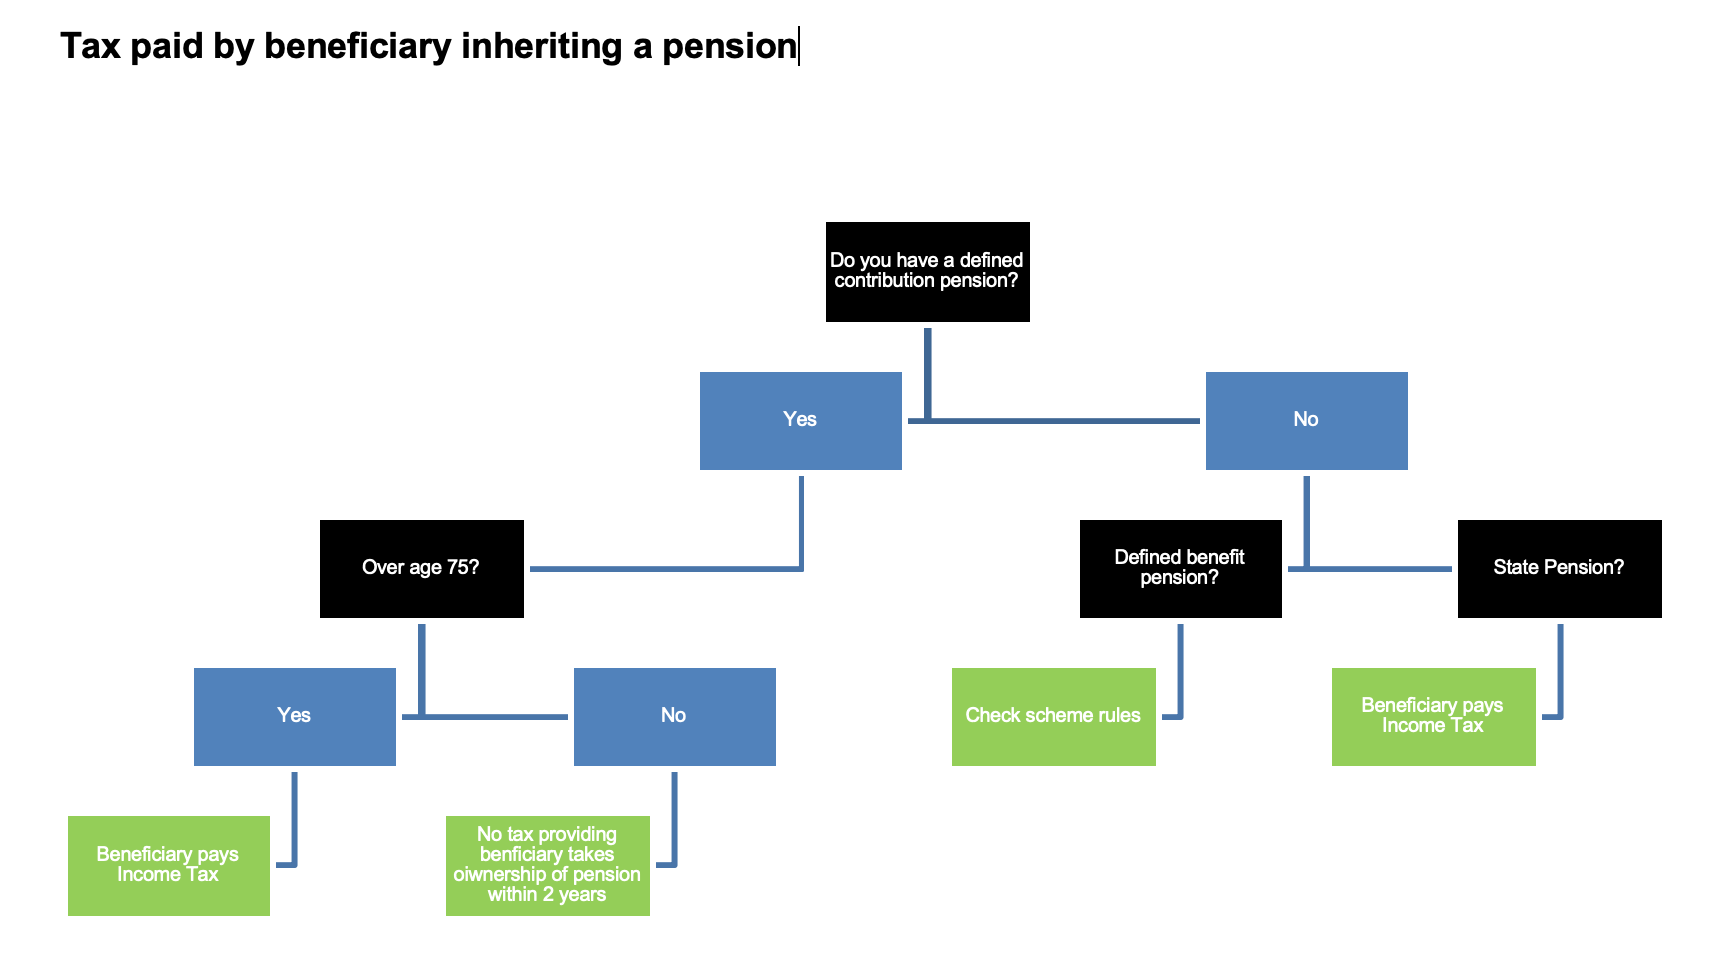 tax paid by a beneficiary inheriting a pension